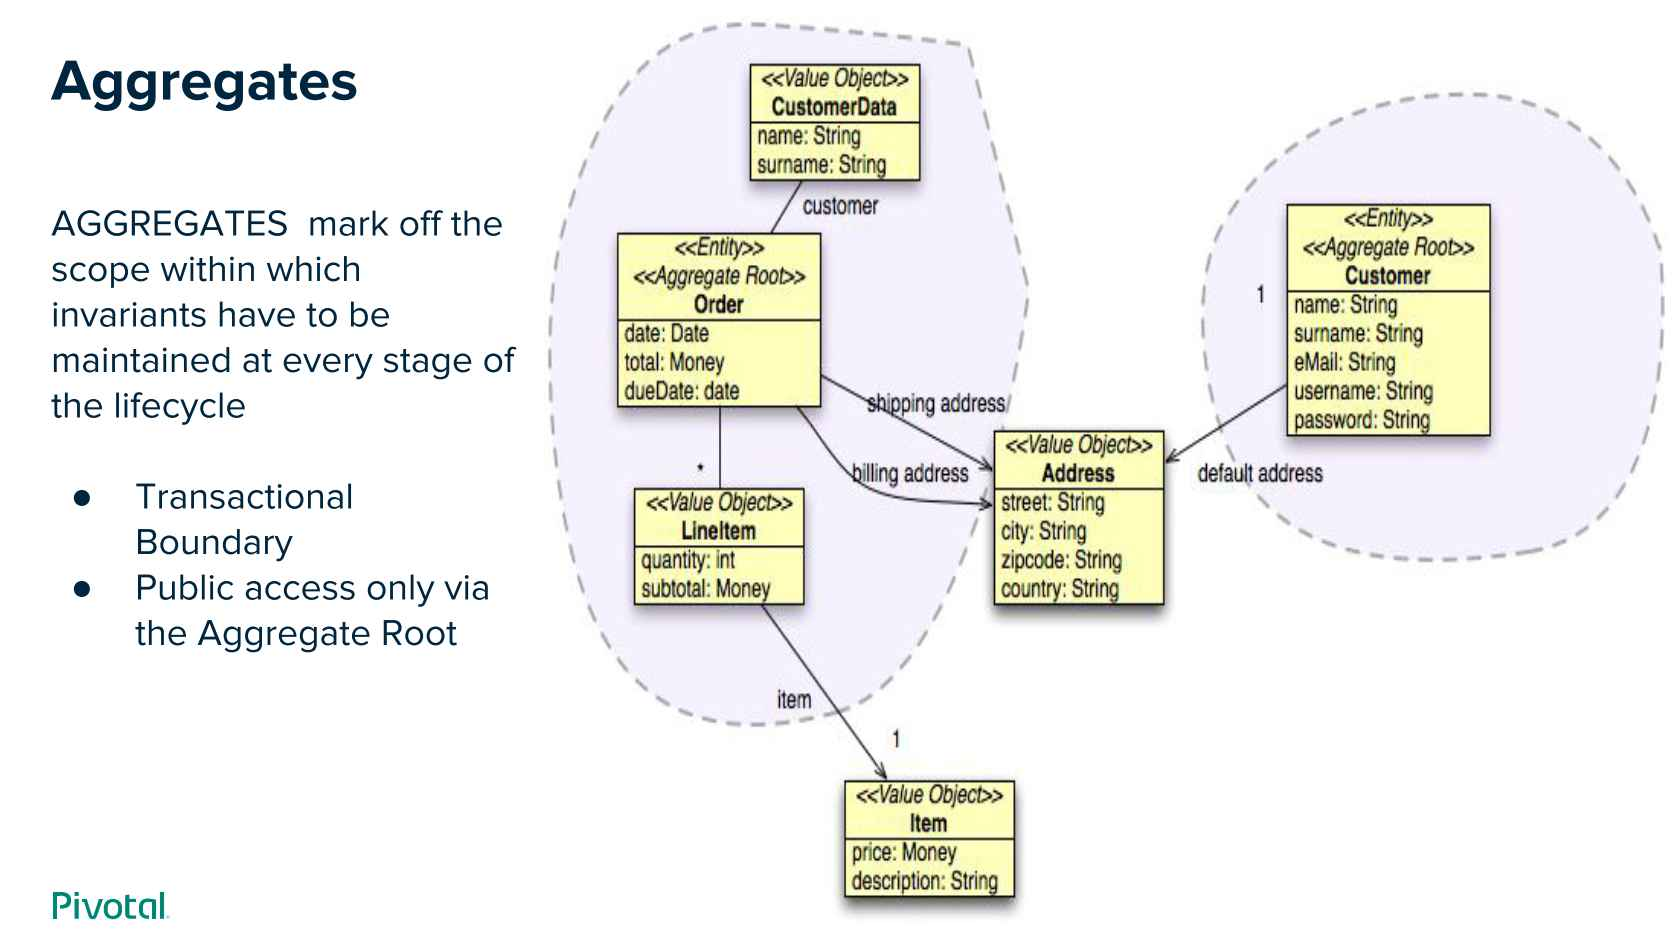 Deconstructing Monoliths with Domain-driven Design